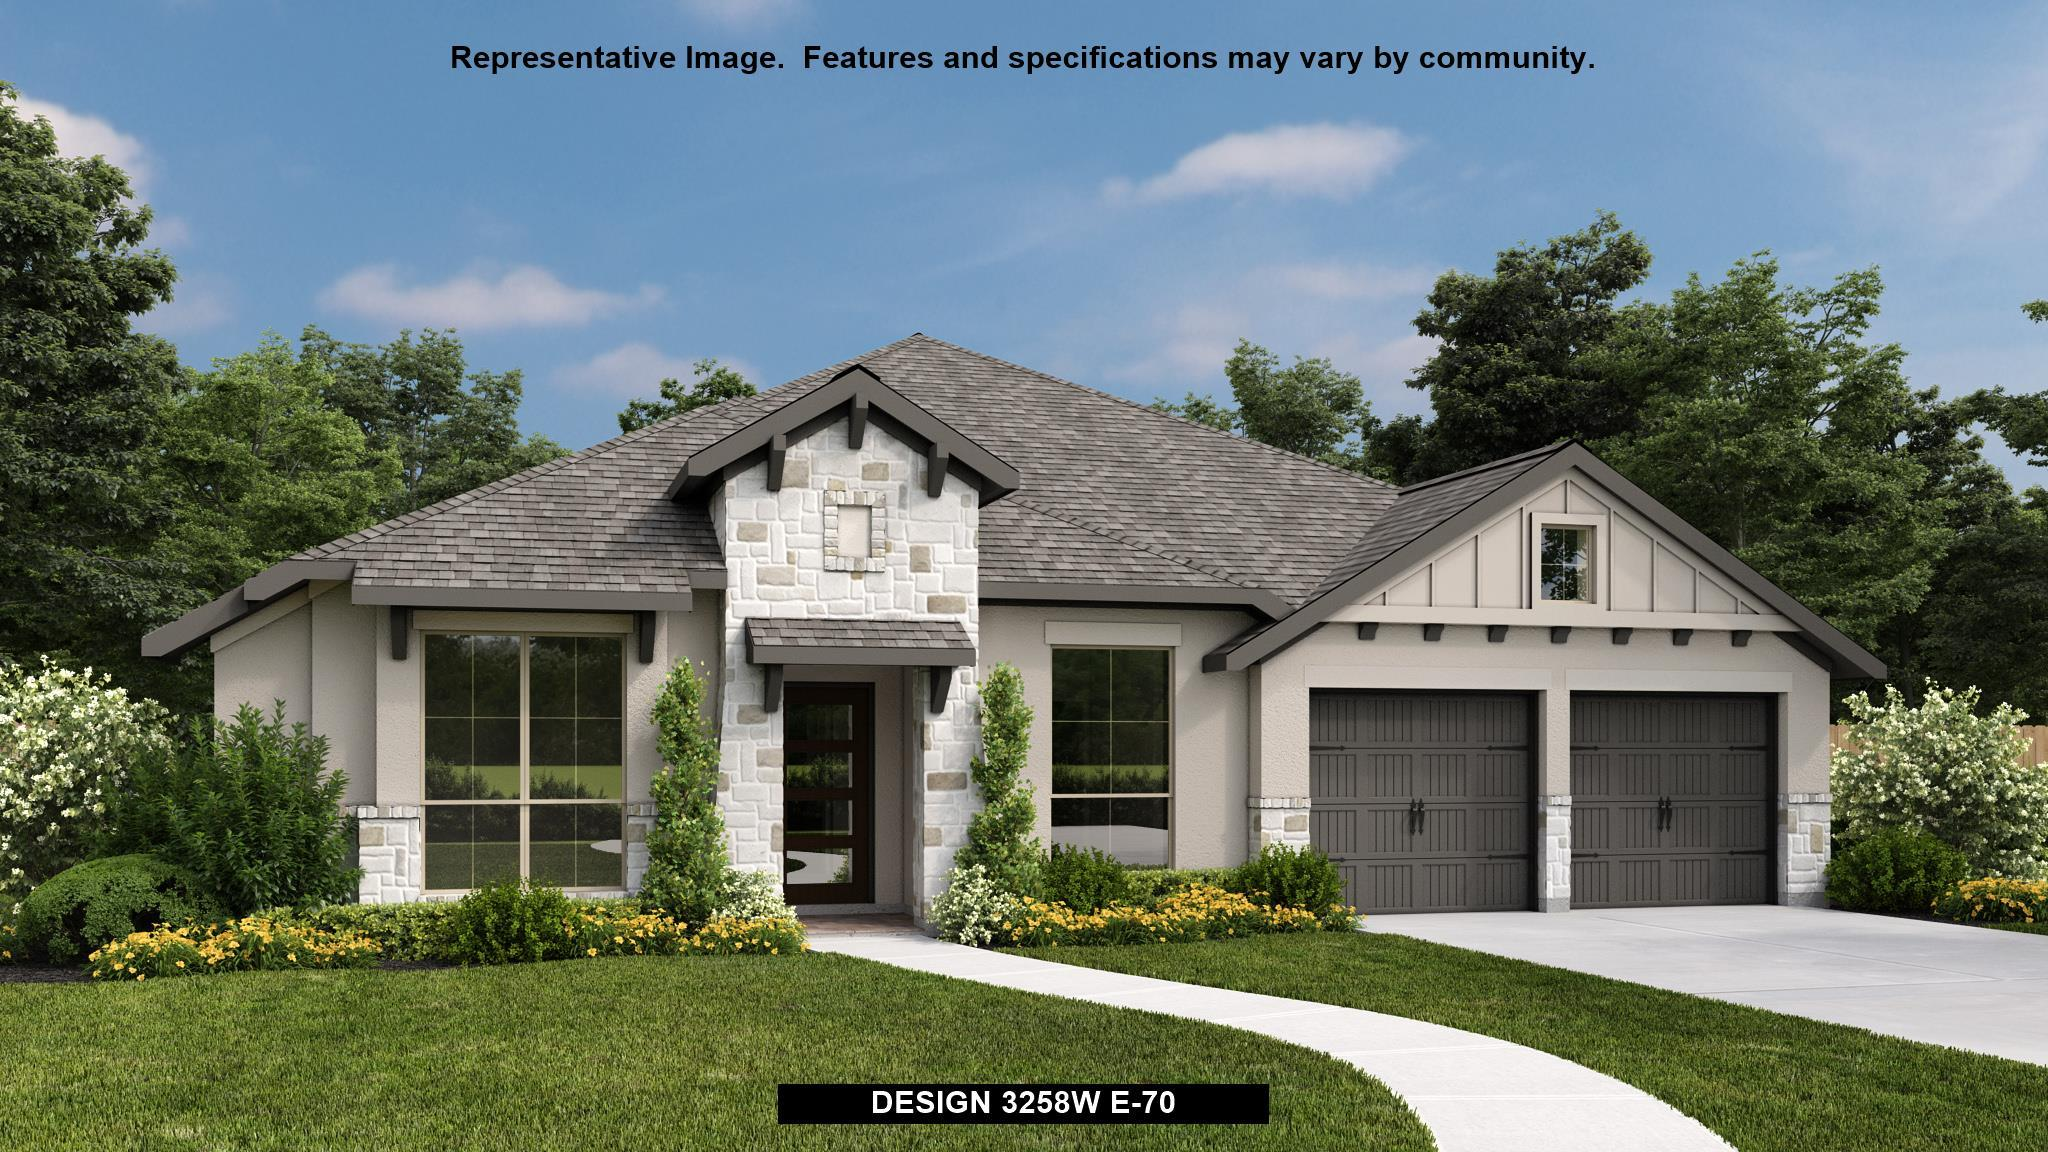 fort bend county black singles Bravorealty-realty associates is dedicated to finding creative solutions for every situation whether you are relocating to the area, seeking alternative financing options or preparing to.